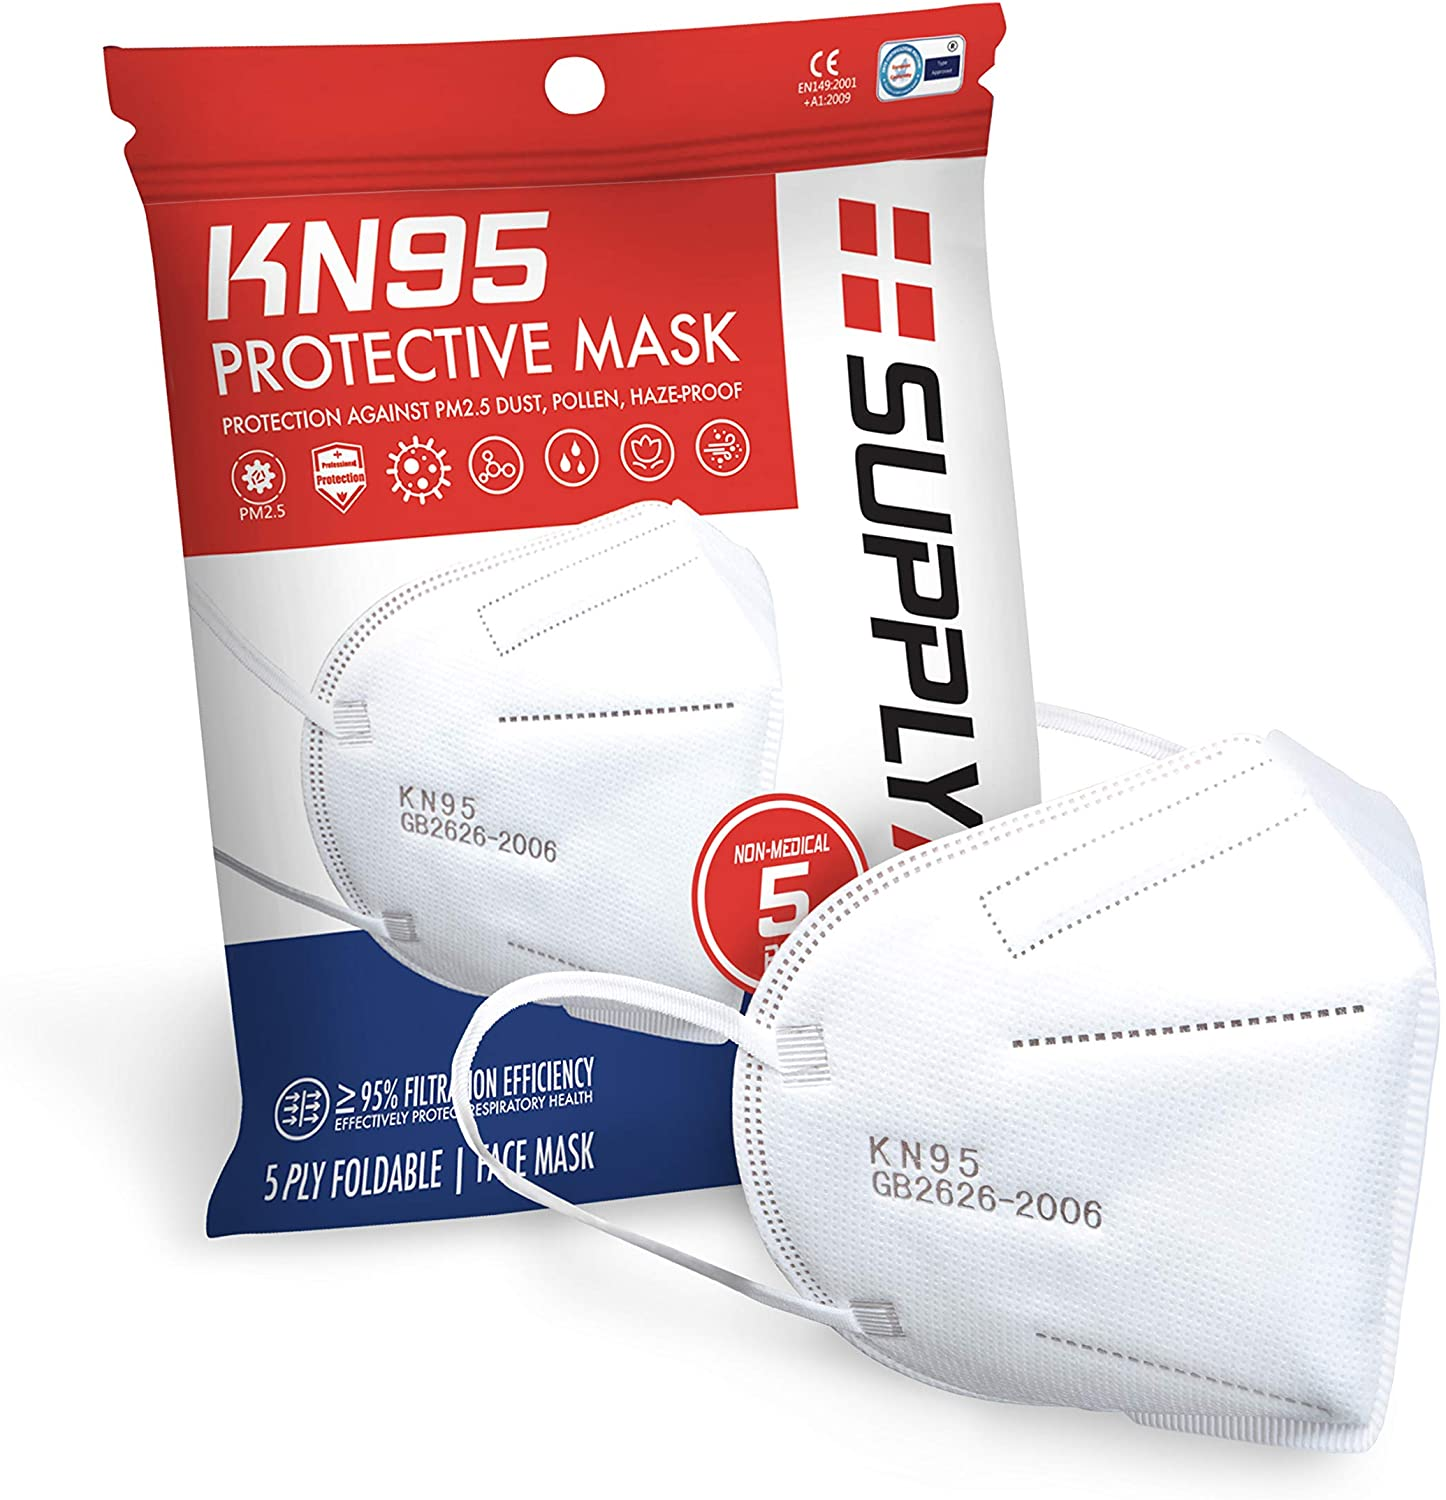 kn95 mask amazon